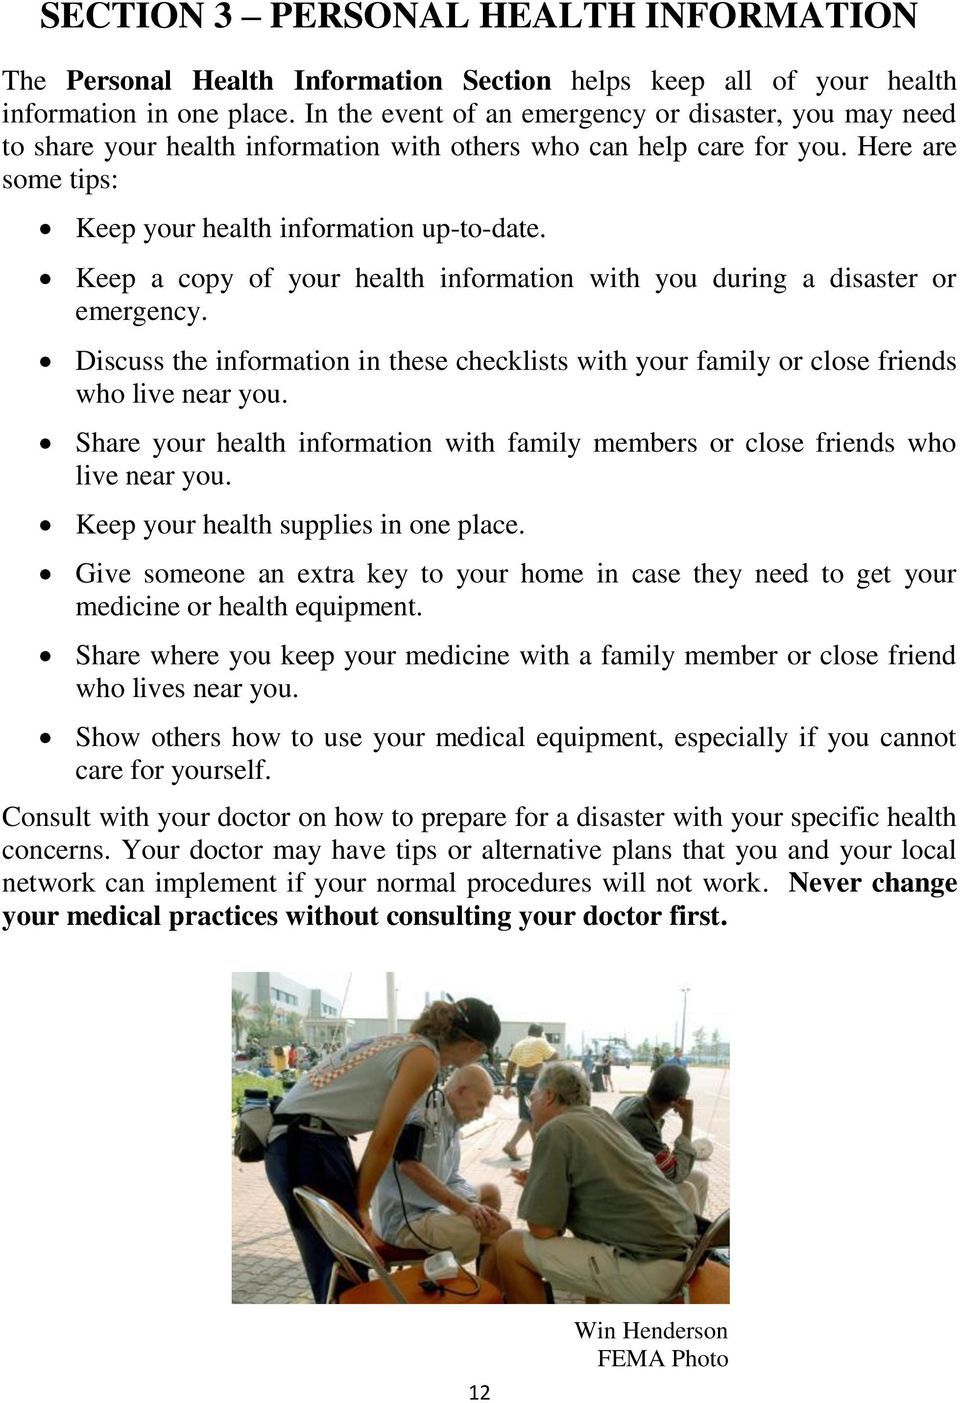 Keep a copy of your health information with you during a disaster or emergency. Discuss the information in these checklists with your family or close friends who live near you.